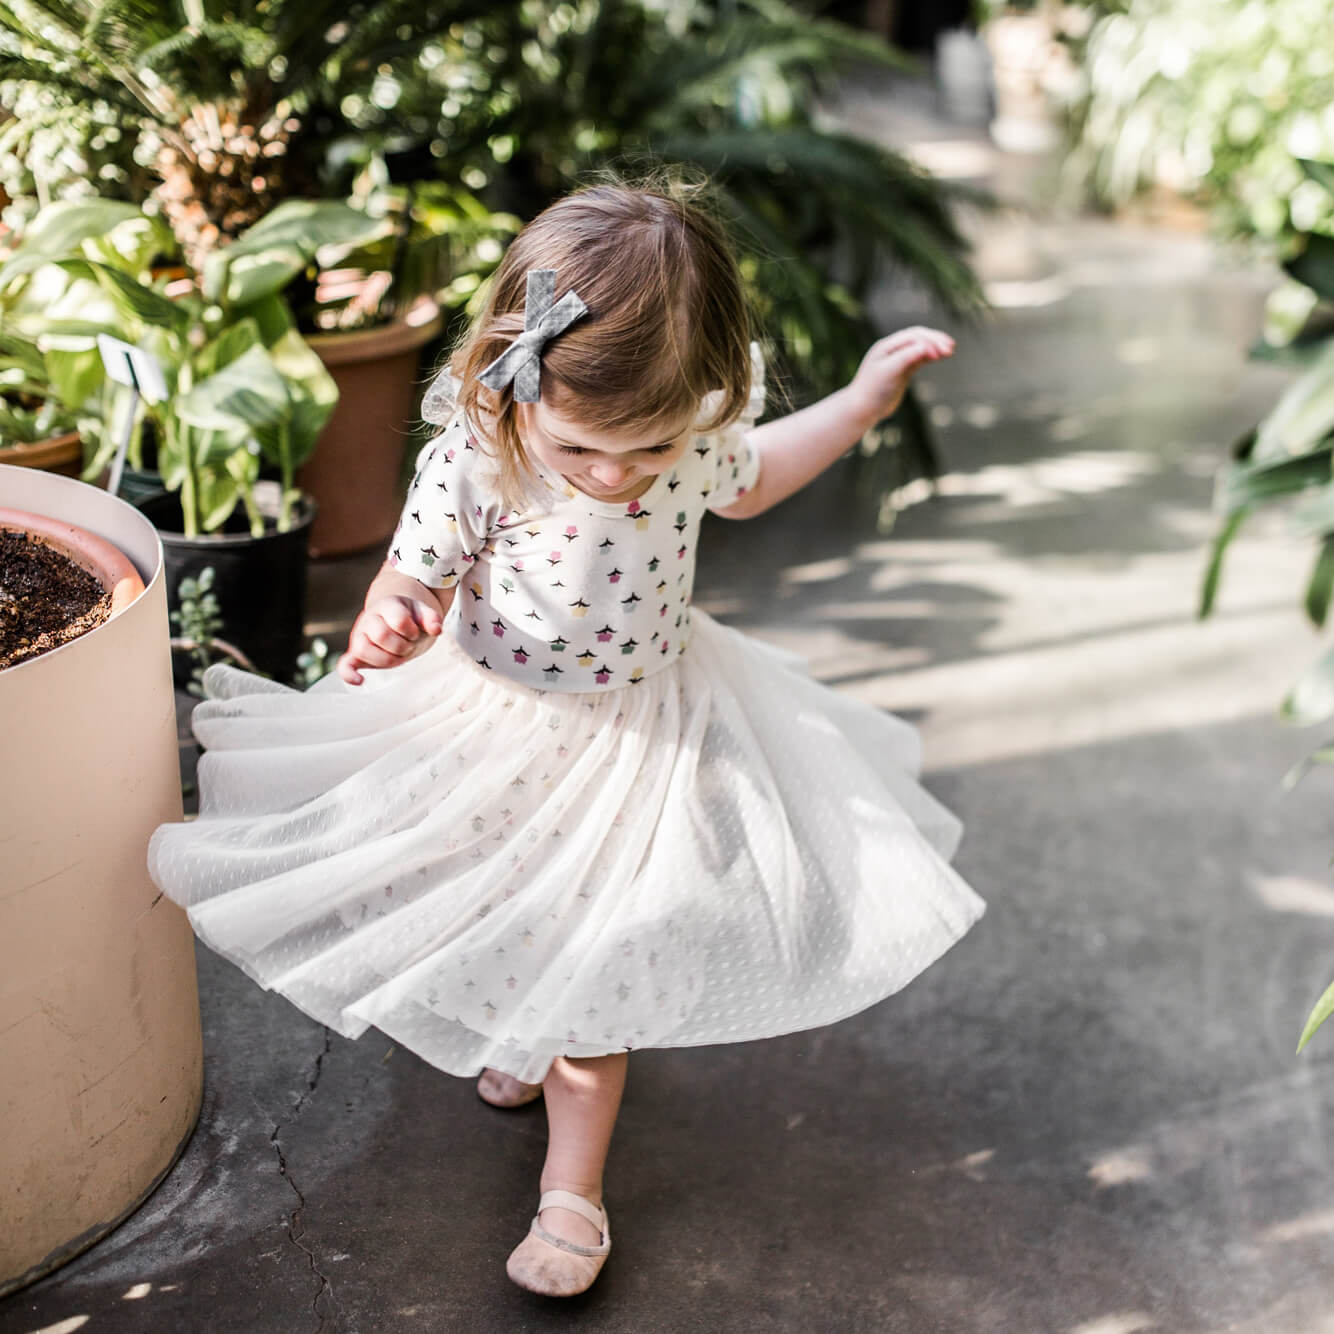 Ballerina Dress - Tutulip (Final Sale - Sizes 6/9m & 12/18m Only)